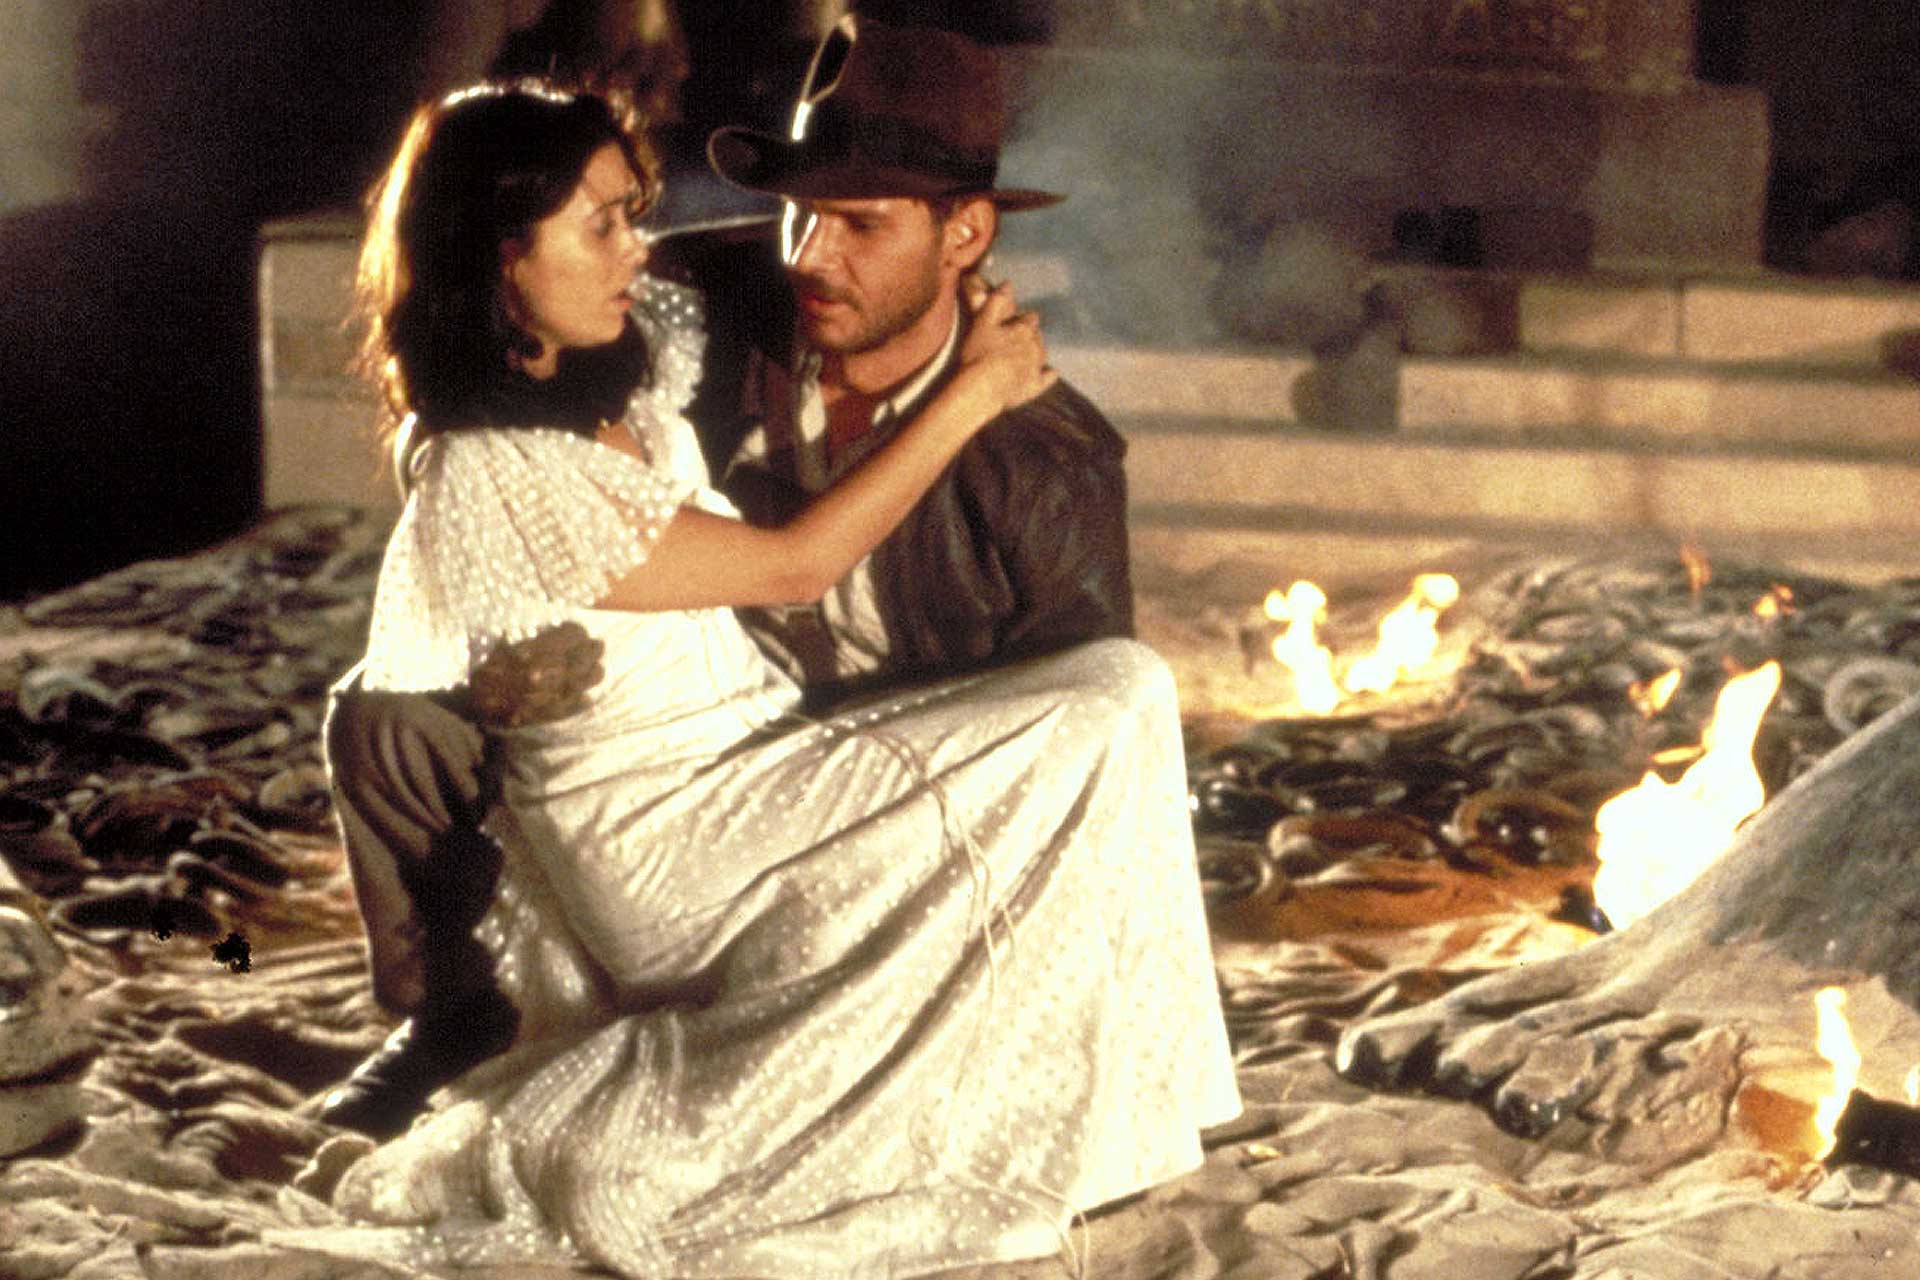 Raiders of the Lost Ark at Family Film Fridays